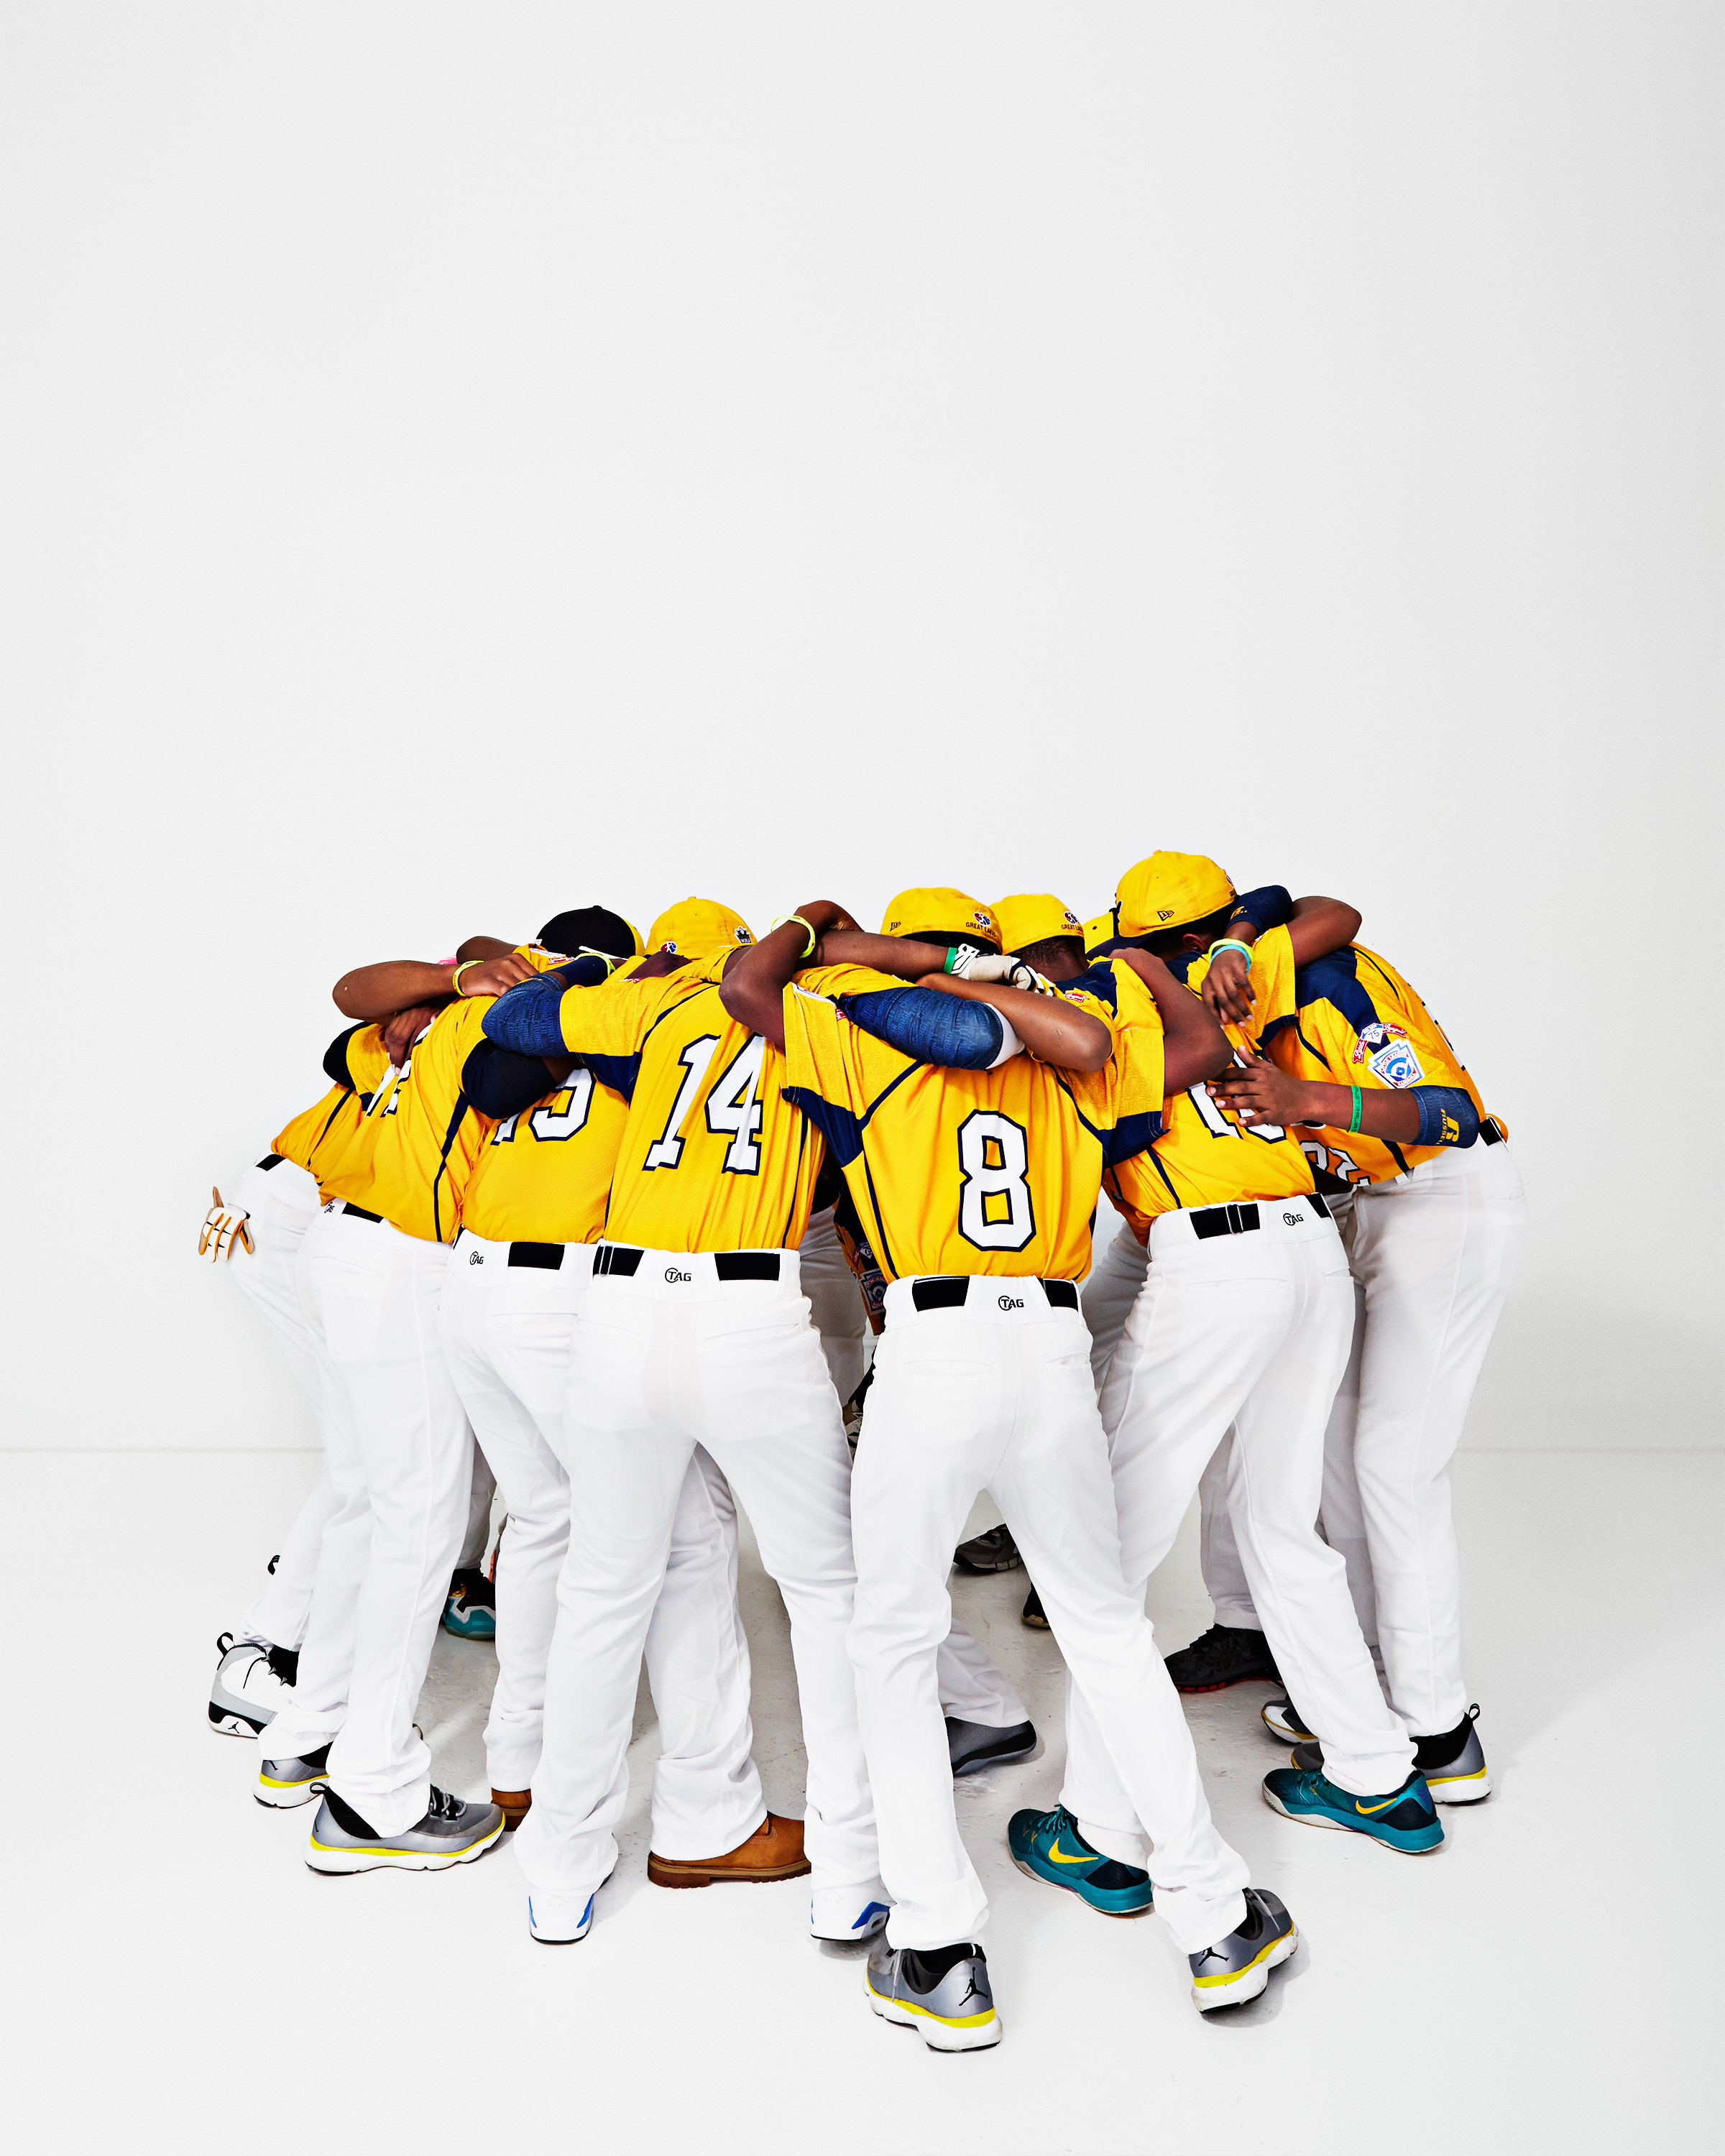 Jackie Robinson West for Chicago Magazine